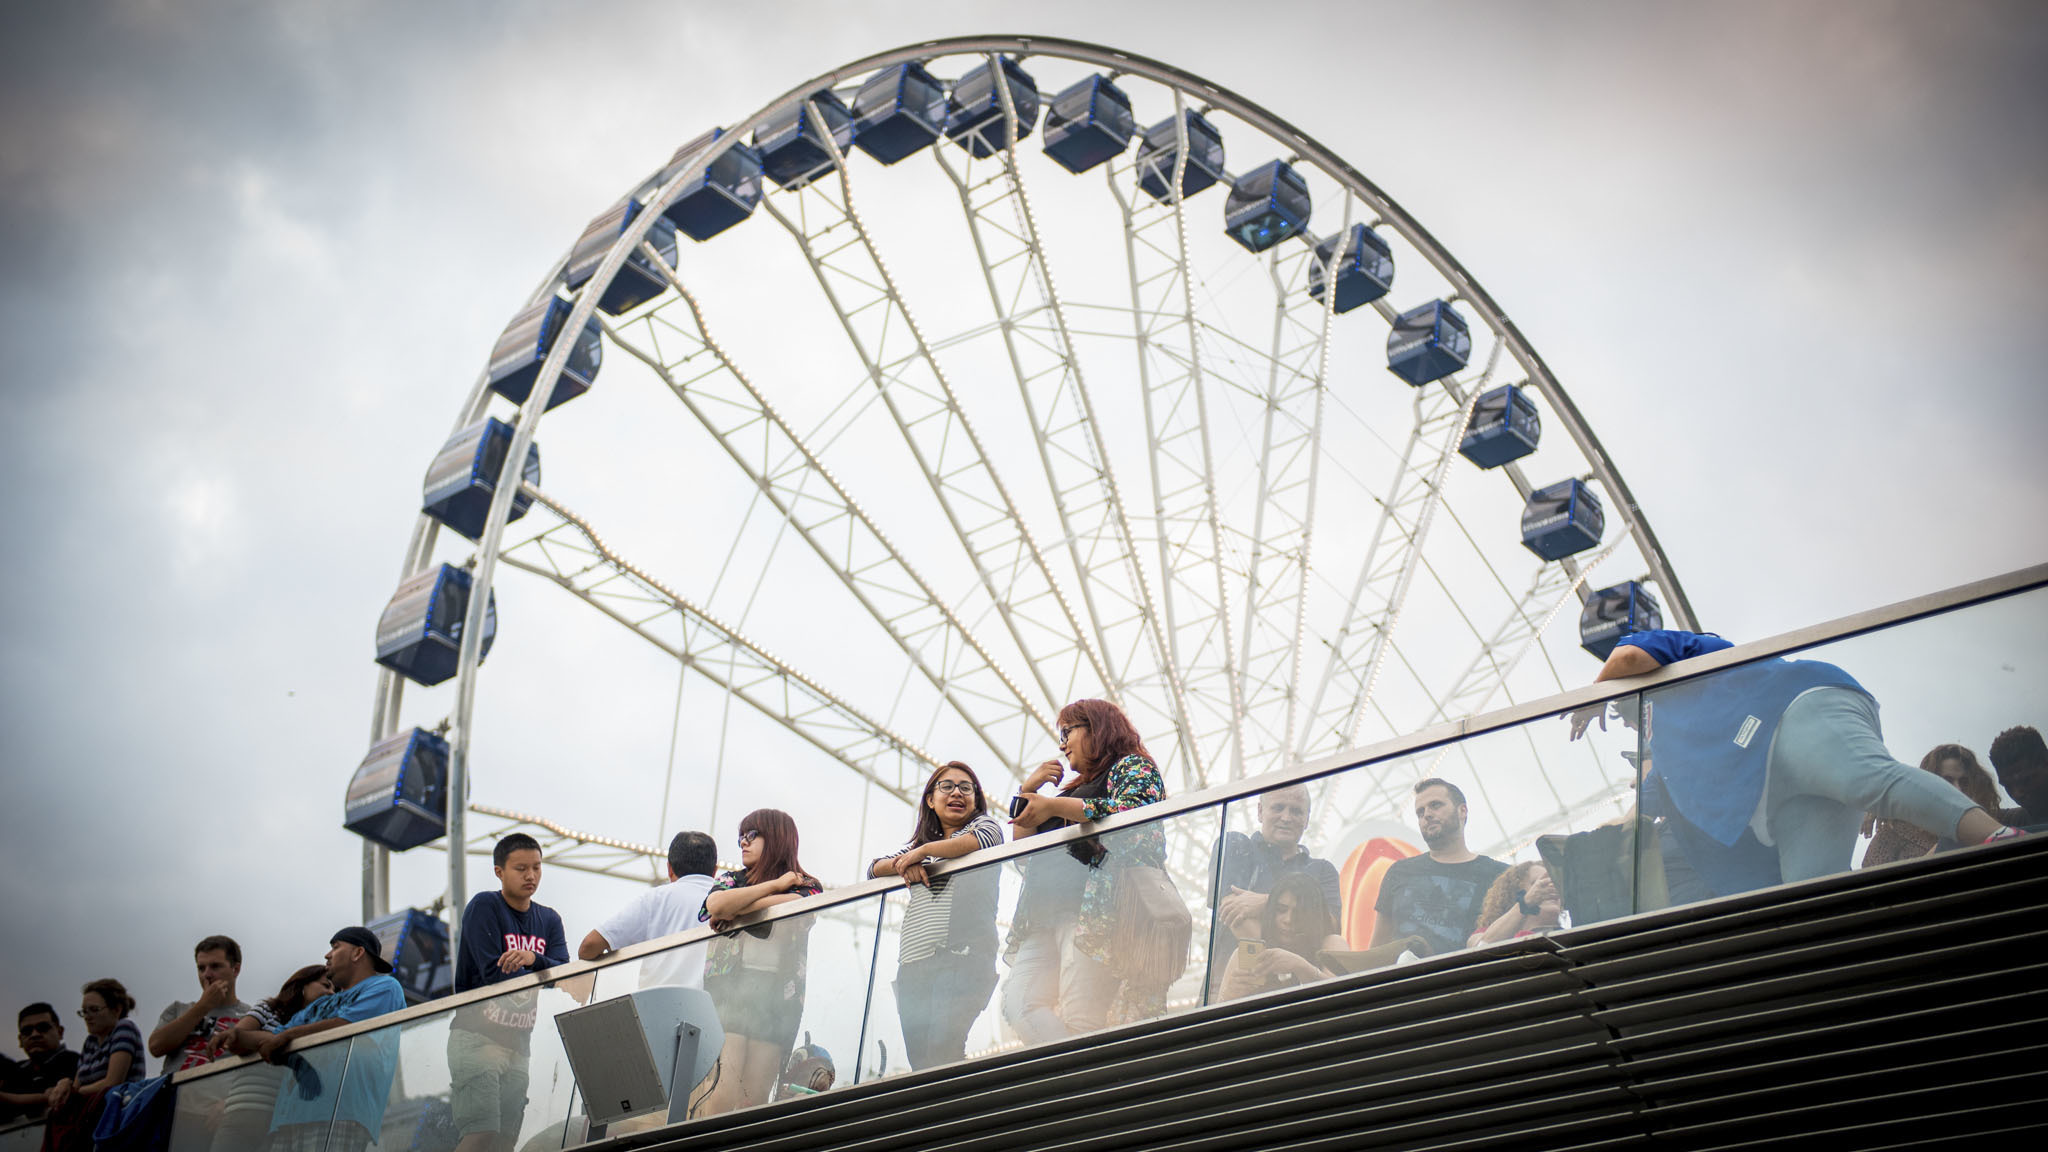 Navy Pier celebrates 100 years and it's never looked better